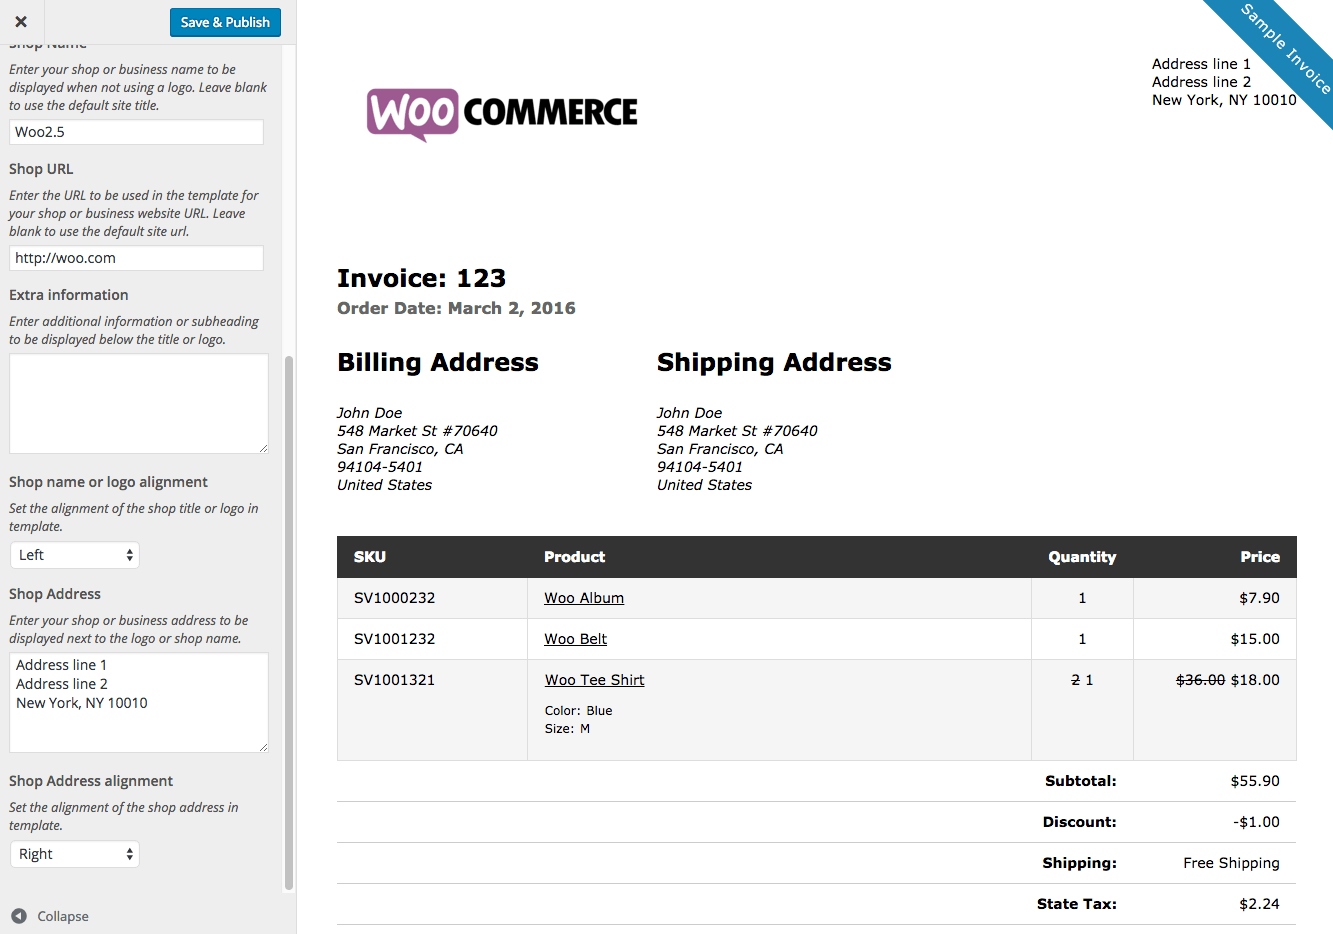 Pigbrotherus  Unusual Woocommerce Print Invoices Amp Packing Lists  Woocommerce Docs With Likable Woocommerce Print Invoices  Packing Lists Customizer With Astounding Truck Invoice Prices Also Sky Invoice In Addition Google Docs Invoice Generator And Customer Database And Invoice Software As Well As Proma Invoice Additionally Shell E Invoicing From Docswoocommercecom With Pigbrotherus  Likable Woocommerce Print Invoices Amp Packing Lists  Woocommerce Docs With Astounding Woocommerce Print Invoices  Packing Lists Customizer And Unusual Truck Invoice Prices Also Sky Invoice In Addition Google Docs Invoice Generator From Docswoocommercecom